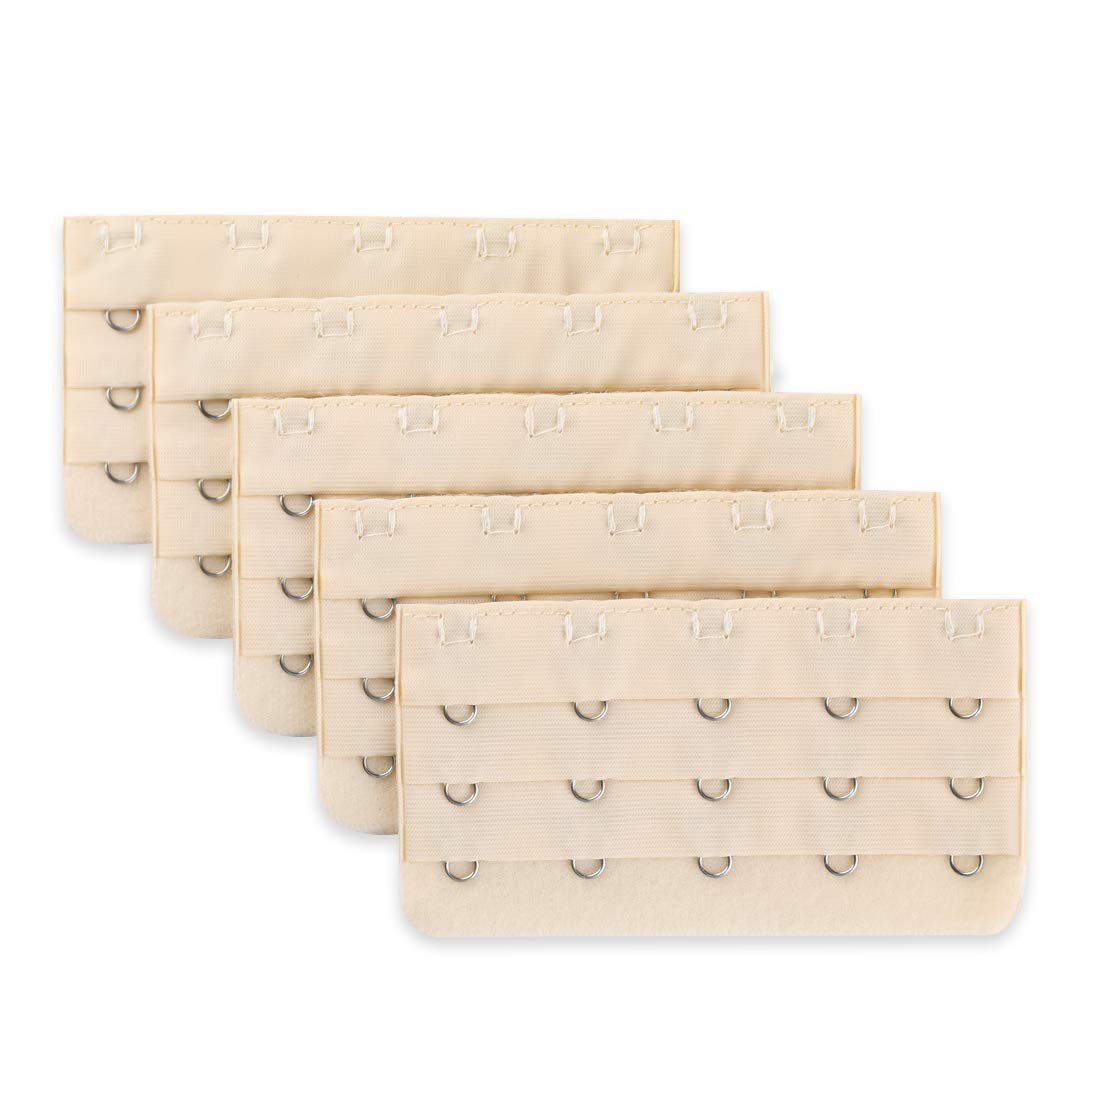 uxcell Ladies 5 Rows Hook and Eye Tape Extension Bra Strap Extender Beige 5 Pcs Beige a12101500ux0309